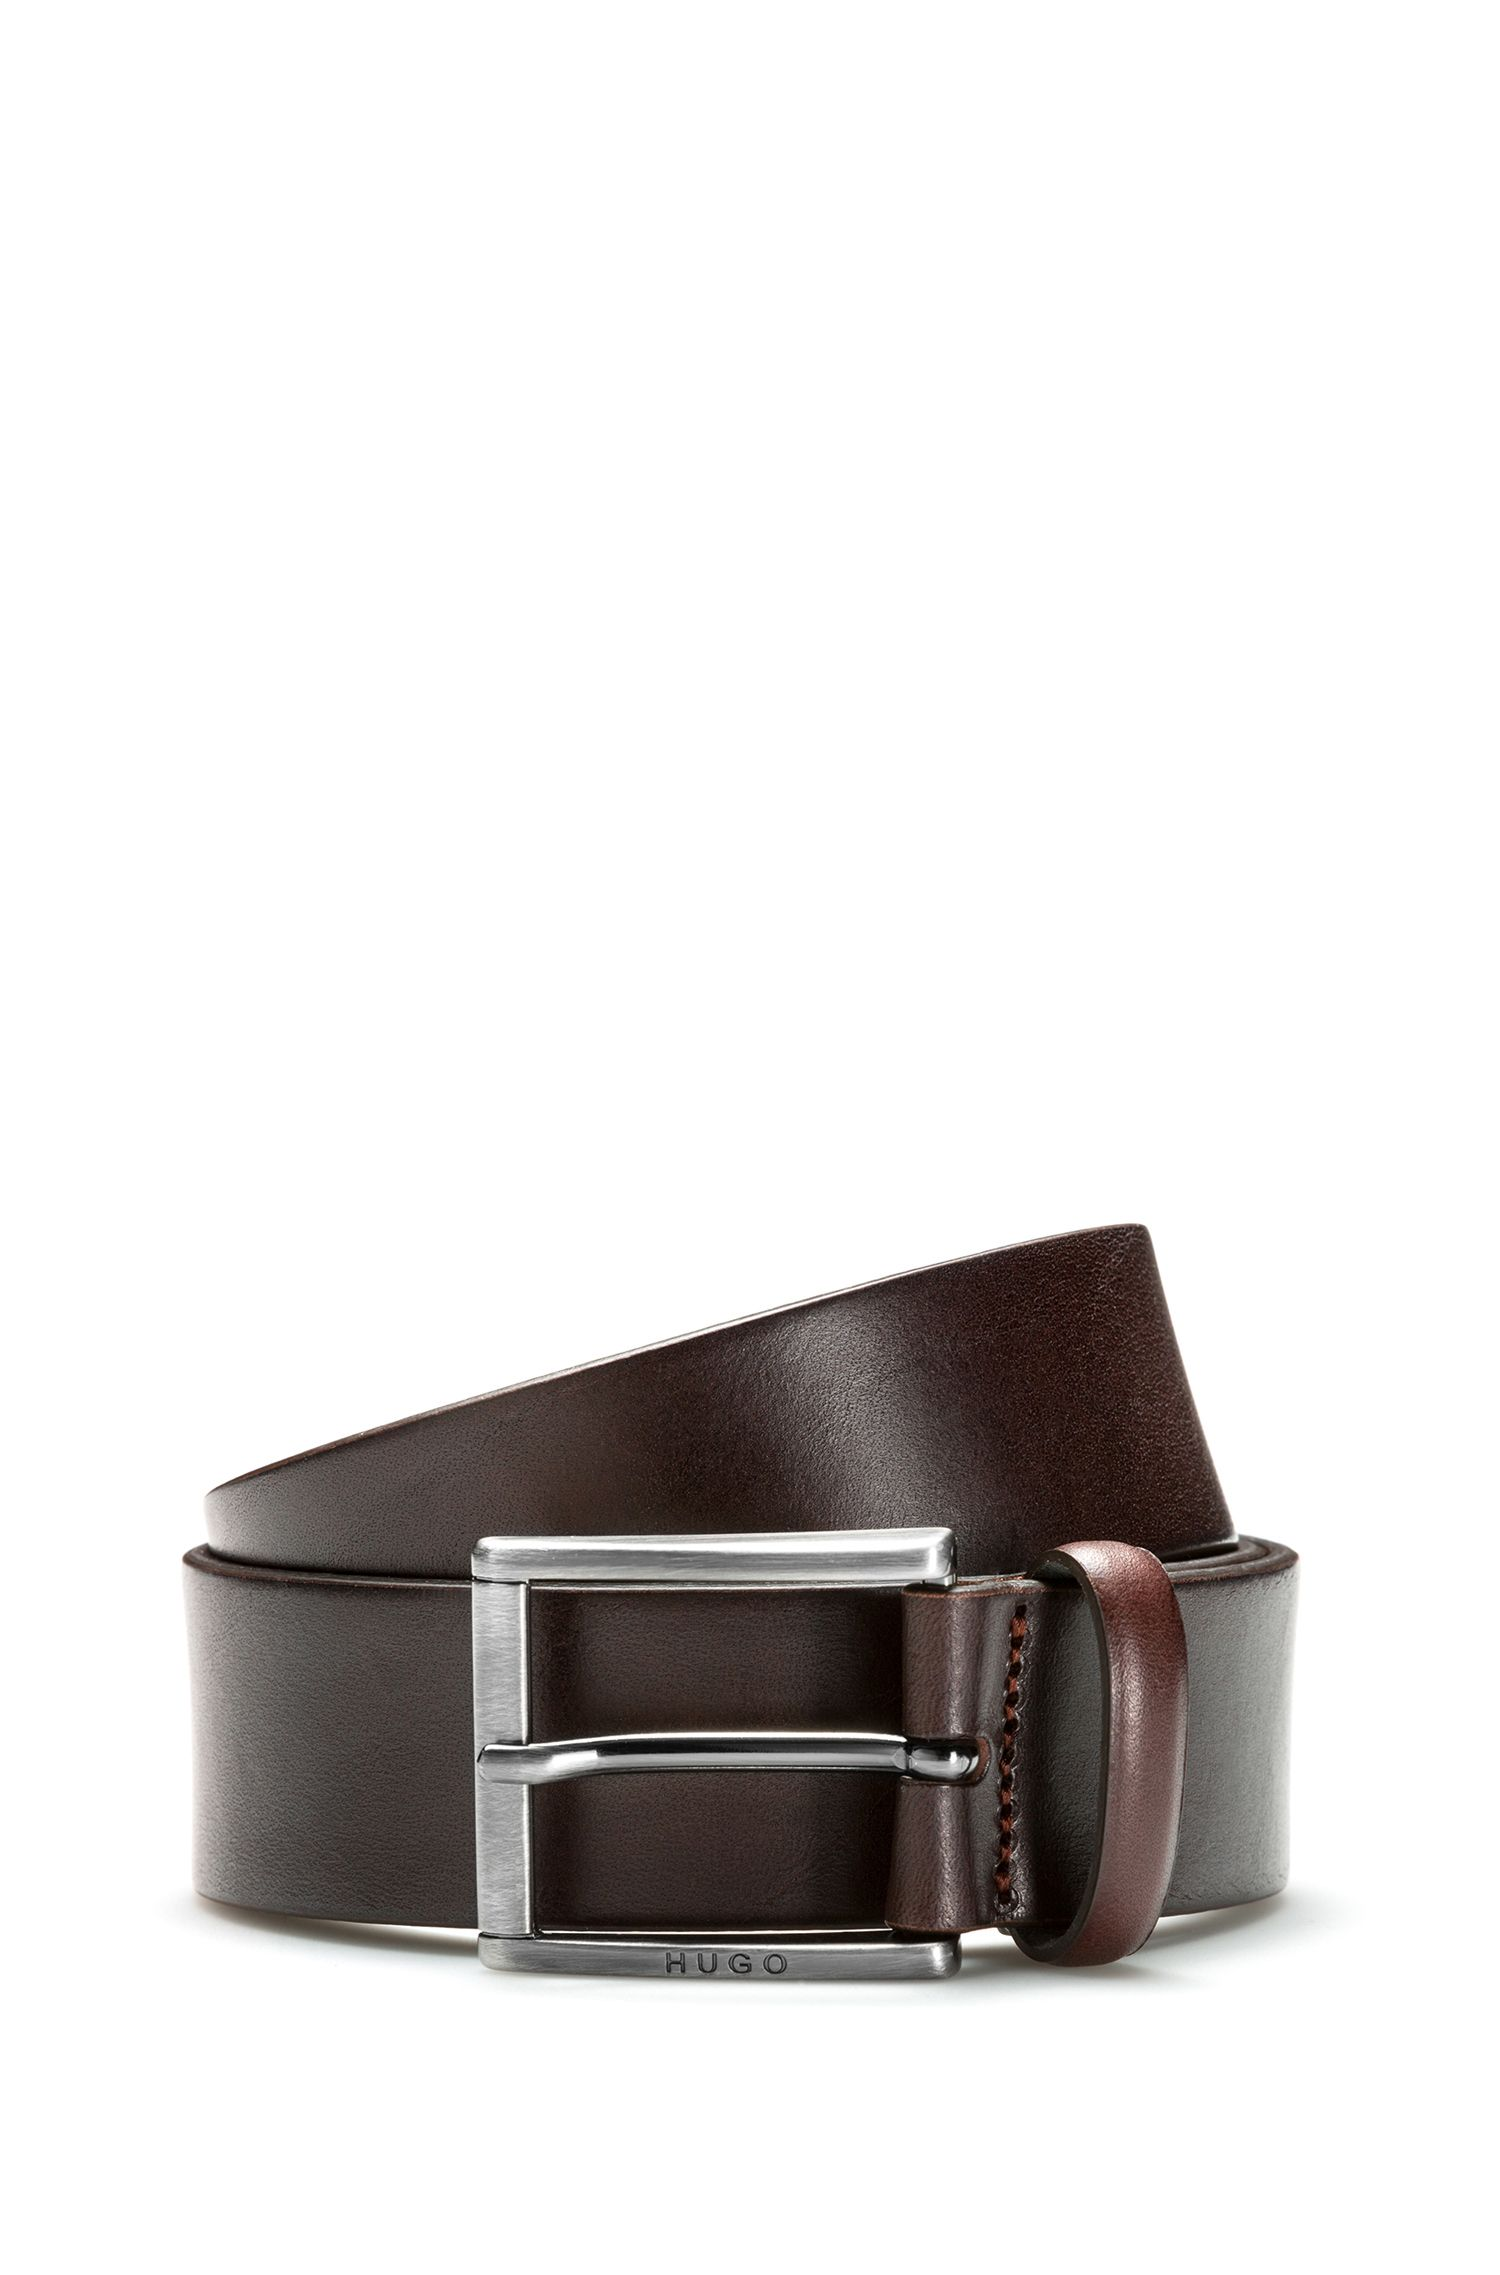 Leather belt with square brushed-metal pin buckle